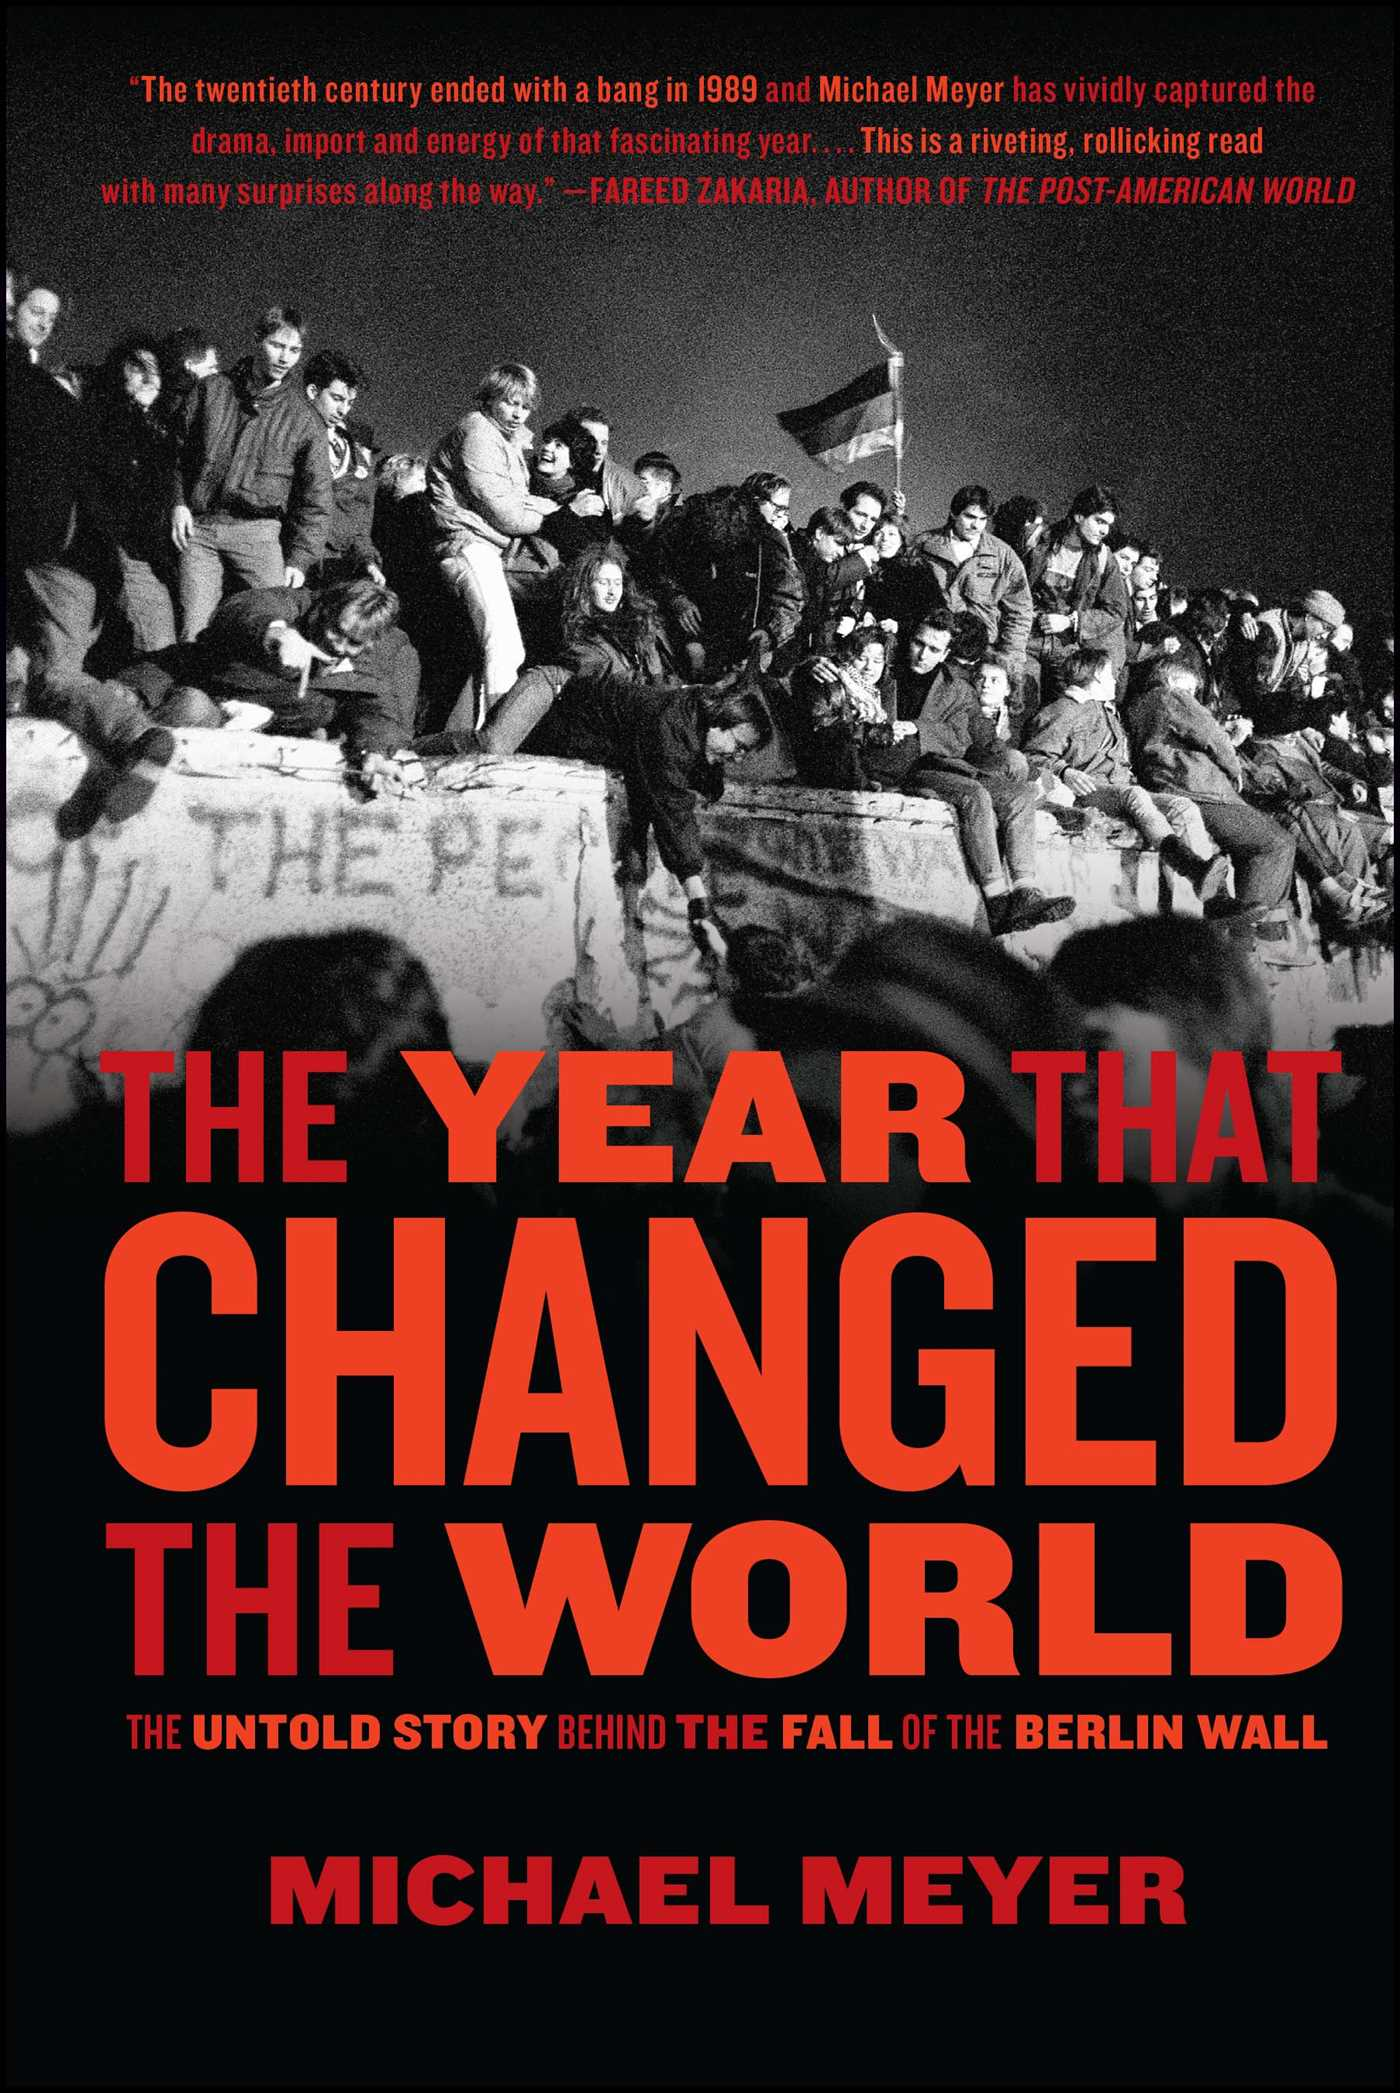 The year that changed the world 9781416558484 hr